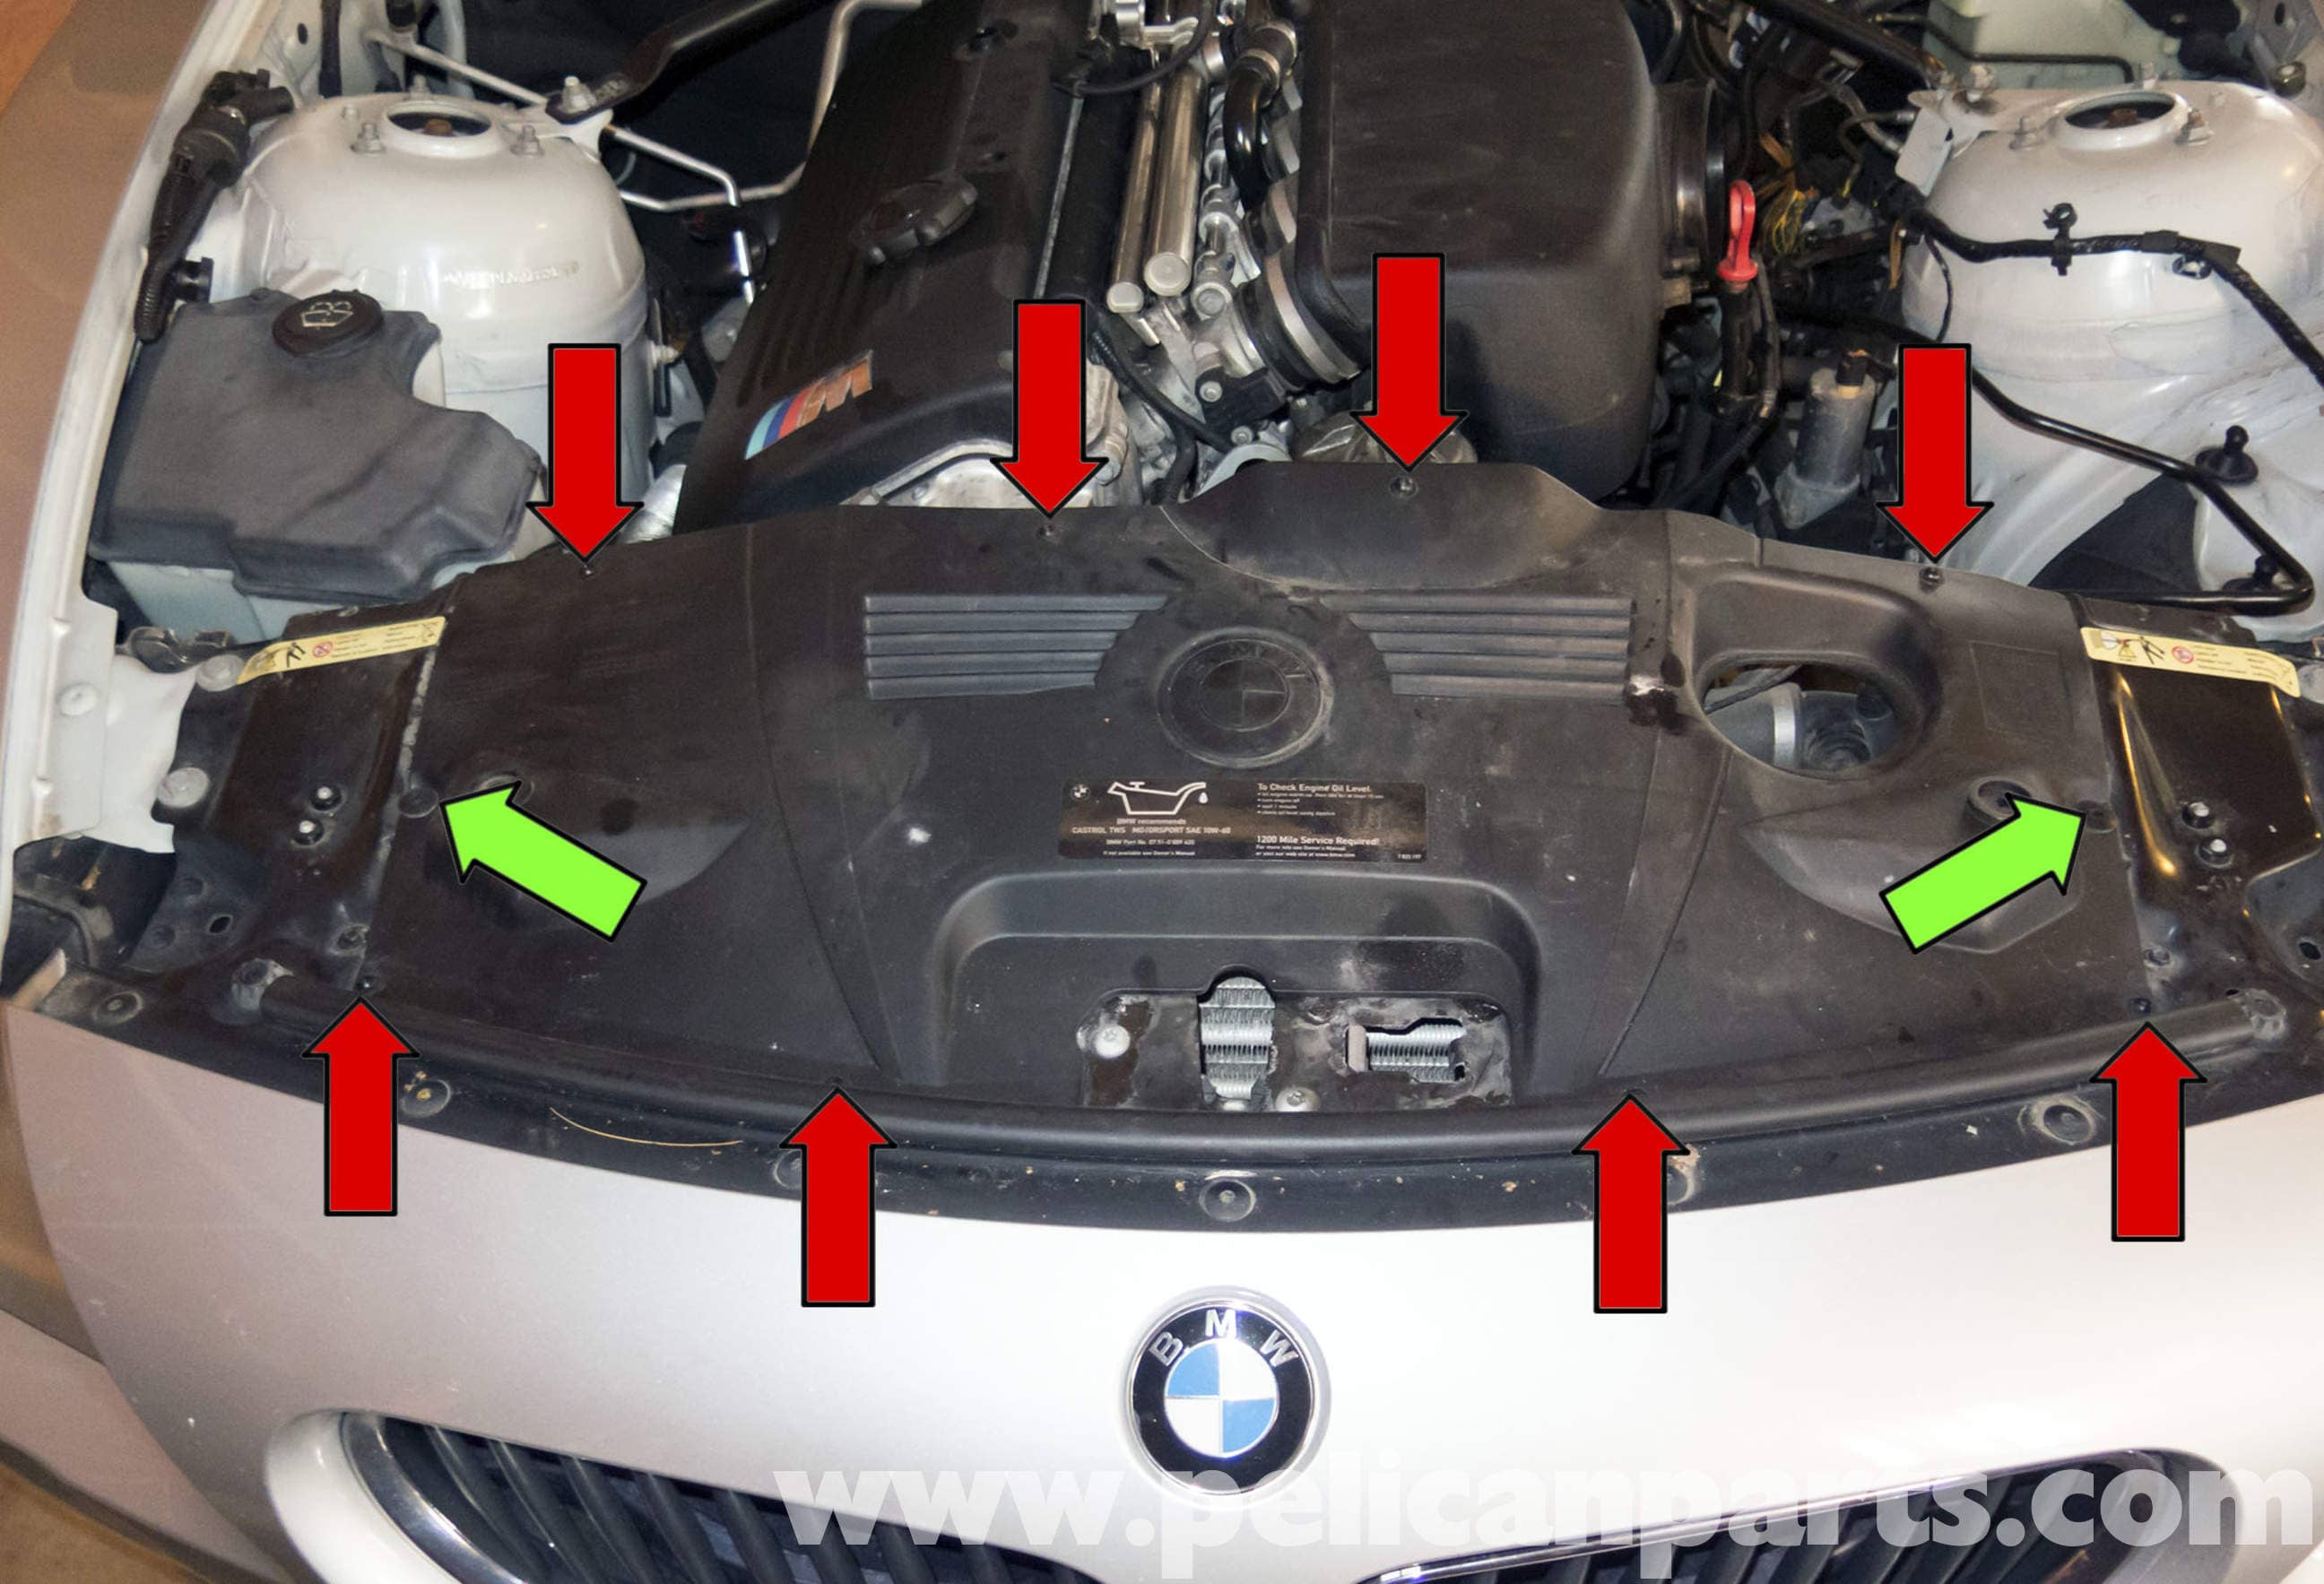 2005 bmw z4 engine diagram trusted wiring diagram porsche 356 engine diagram bmw z4 engine cooling system diagram car wiring diagrams explained \\u2022 1999 bmw 528i engine diagram 2005 bmw z4 engine diagram